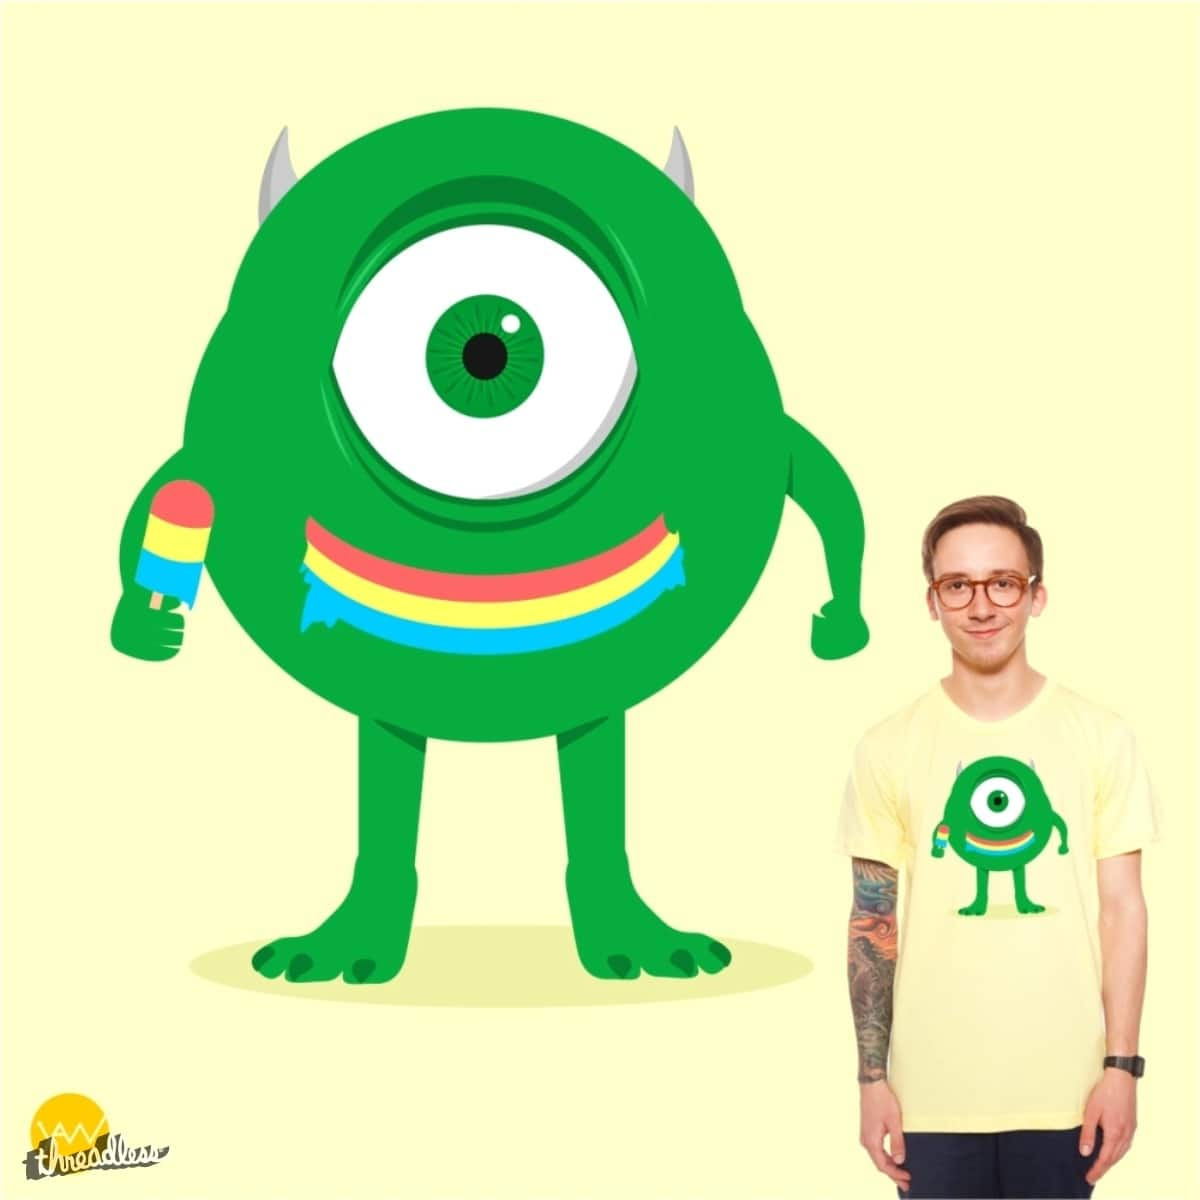 Make your own smile by wimadeputra on Threadless